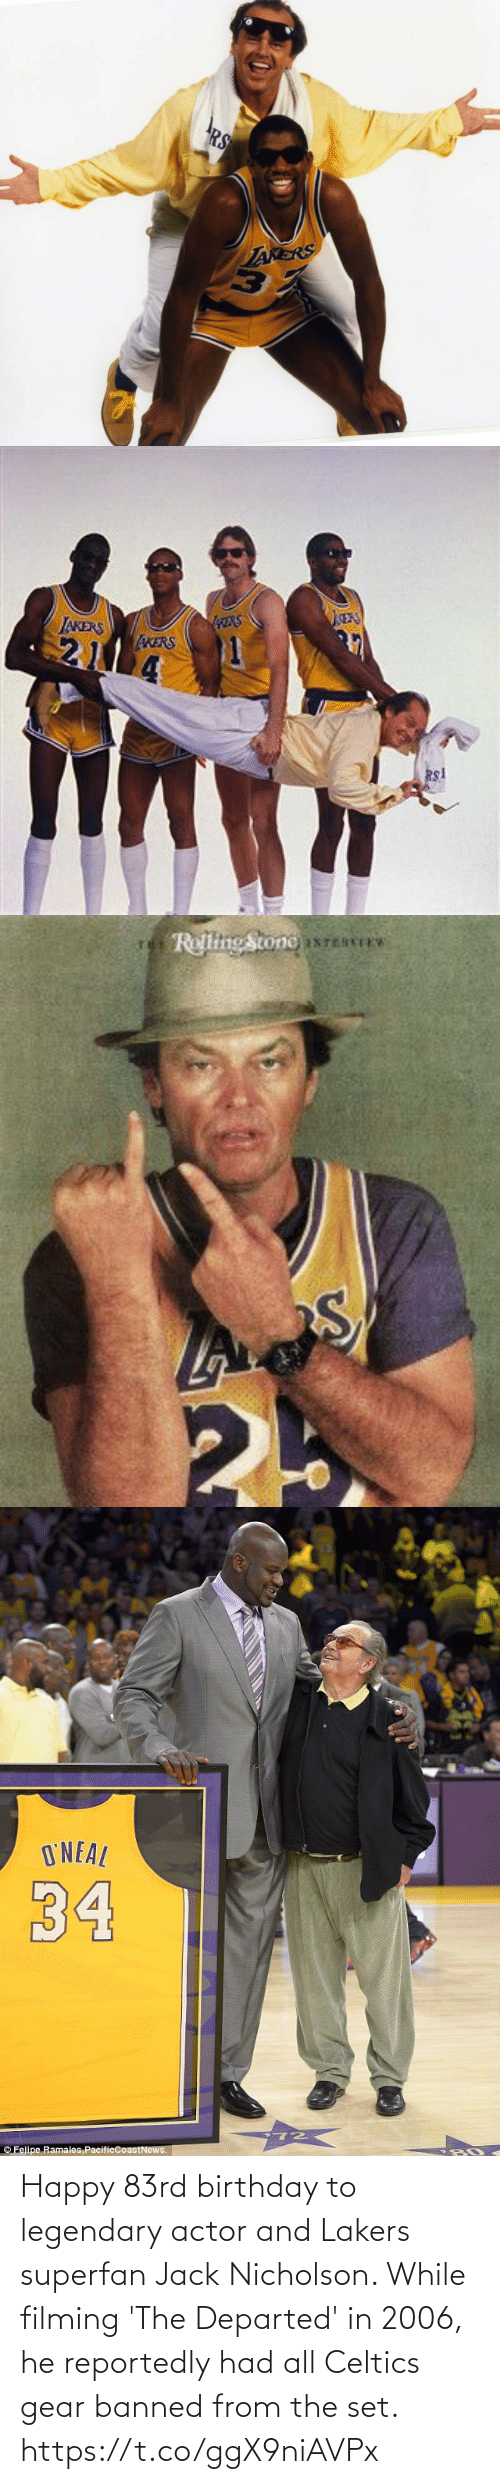 Celtics: Happy 83rd birthday to legendary actor and Lakers superfan Jack Nicholson.   While filming 'The Departed' in 2006, he reportedly had all Celtics gear banned from the set. https://t.co/ggX9niAVPx